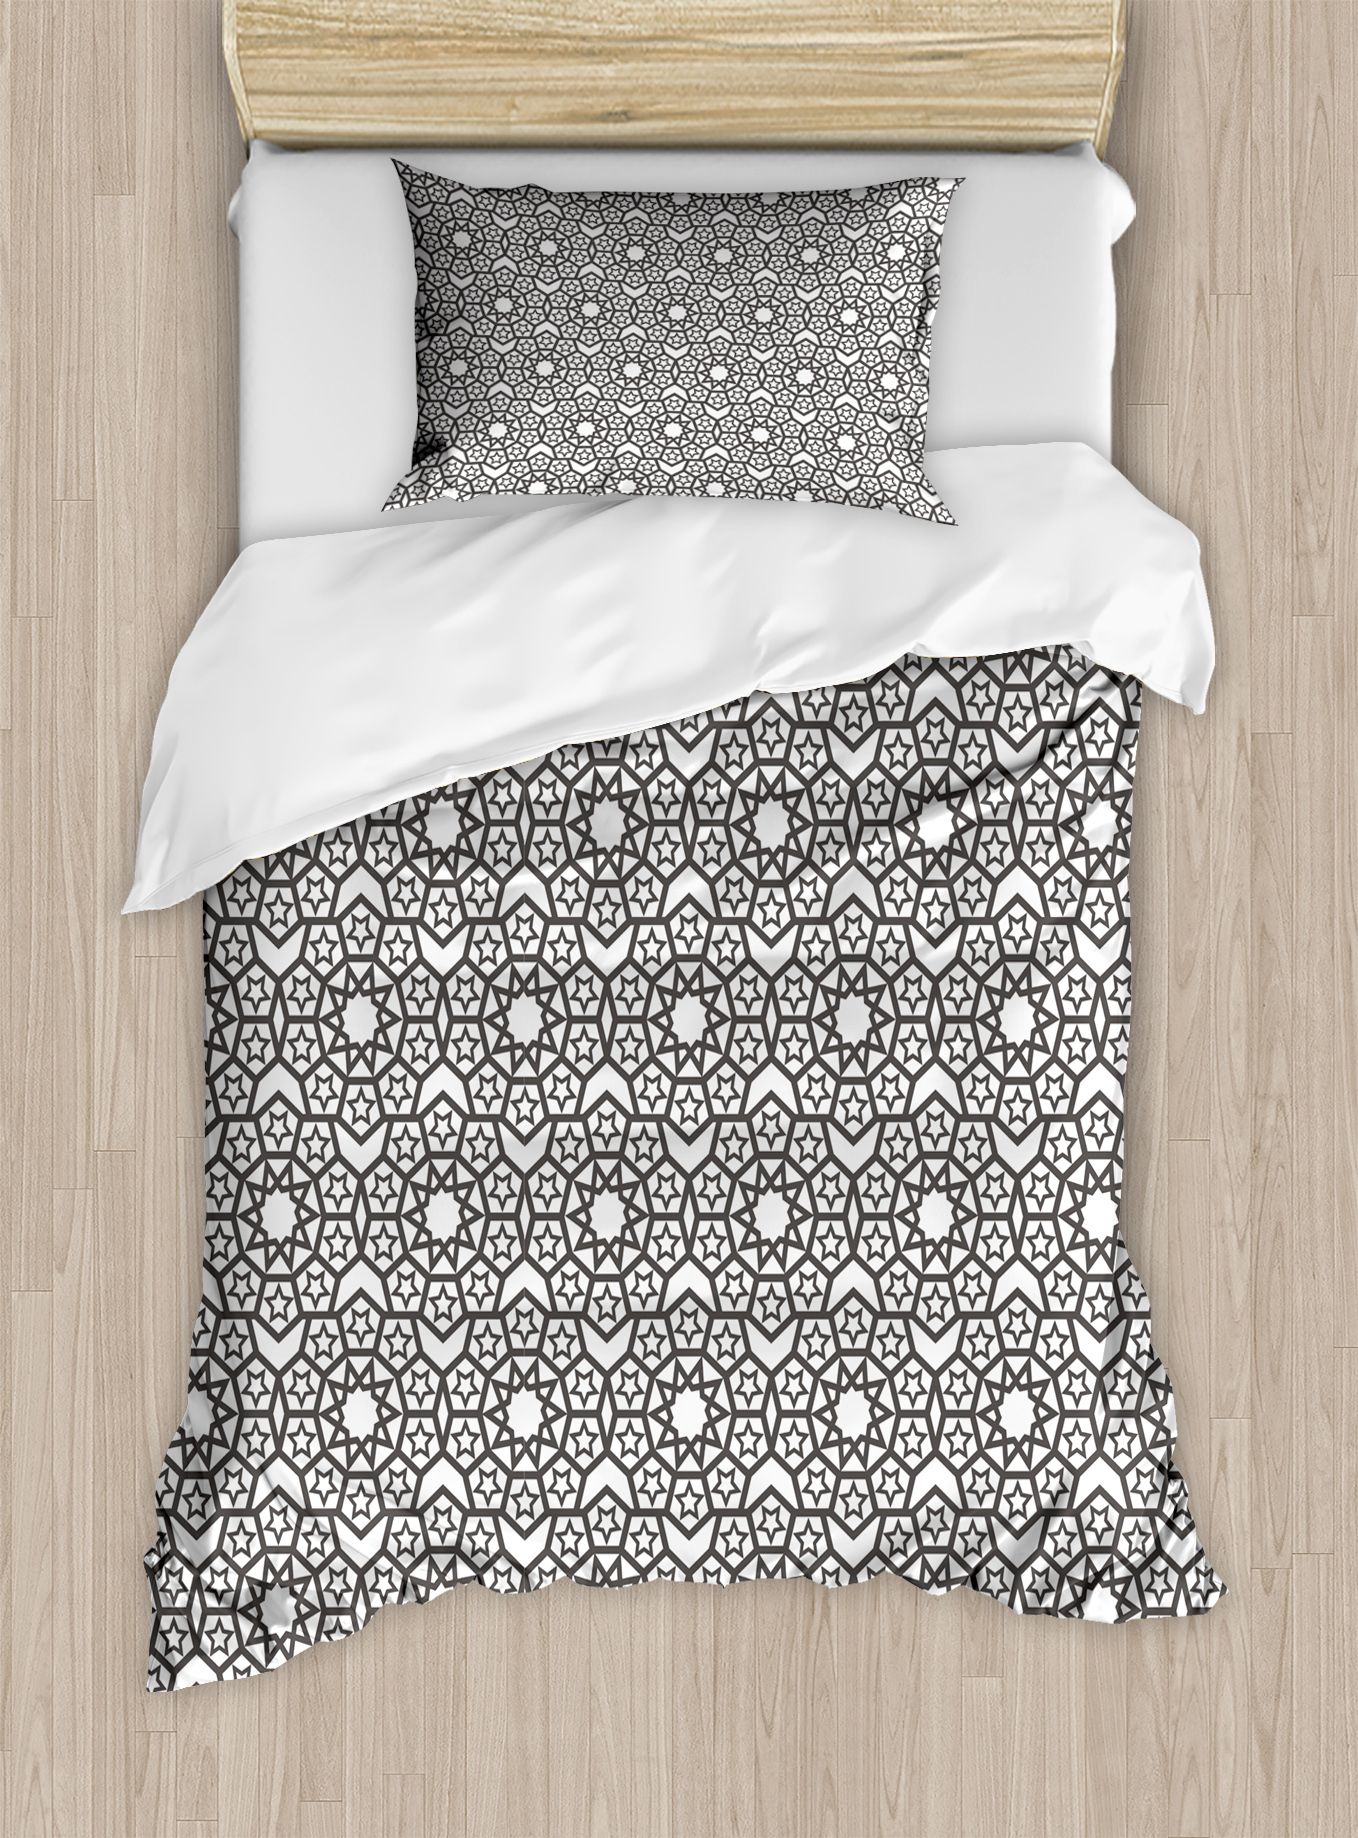 Grey And White Duvet Cover Set, Arabesque Oriental Folk Ethnic Historic  Motif With Stars Geometric, Decorative Bedding Set With Pillow Shams,  Charcoal ...